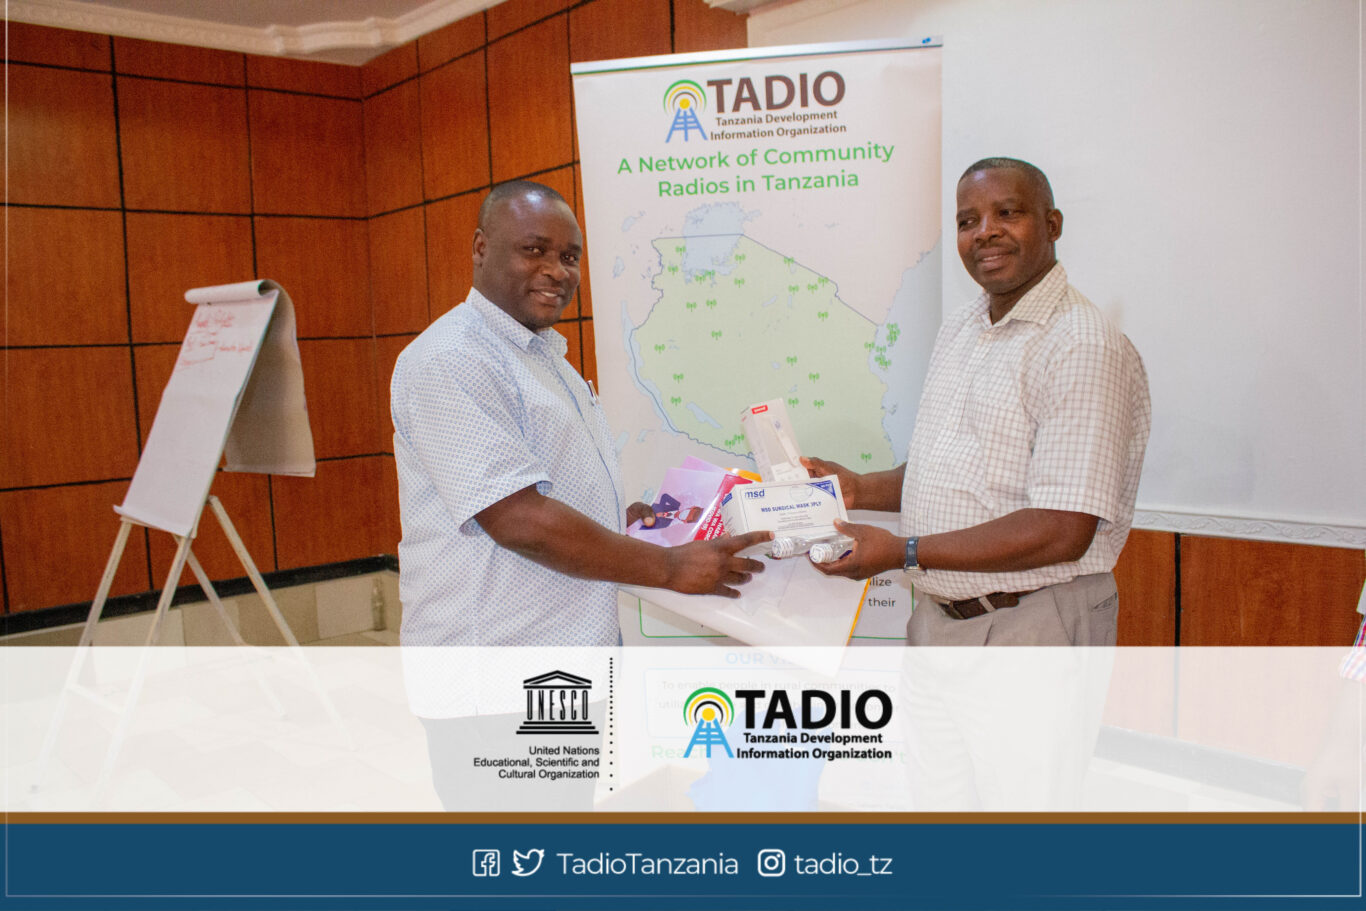 Chai FM Manager, Mr. Ally Malwenga receiving health protection equipment from TADIO Chairperson, Mr. Prosper Kwigize